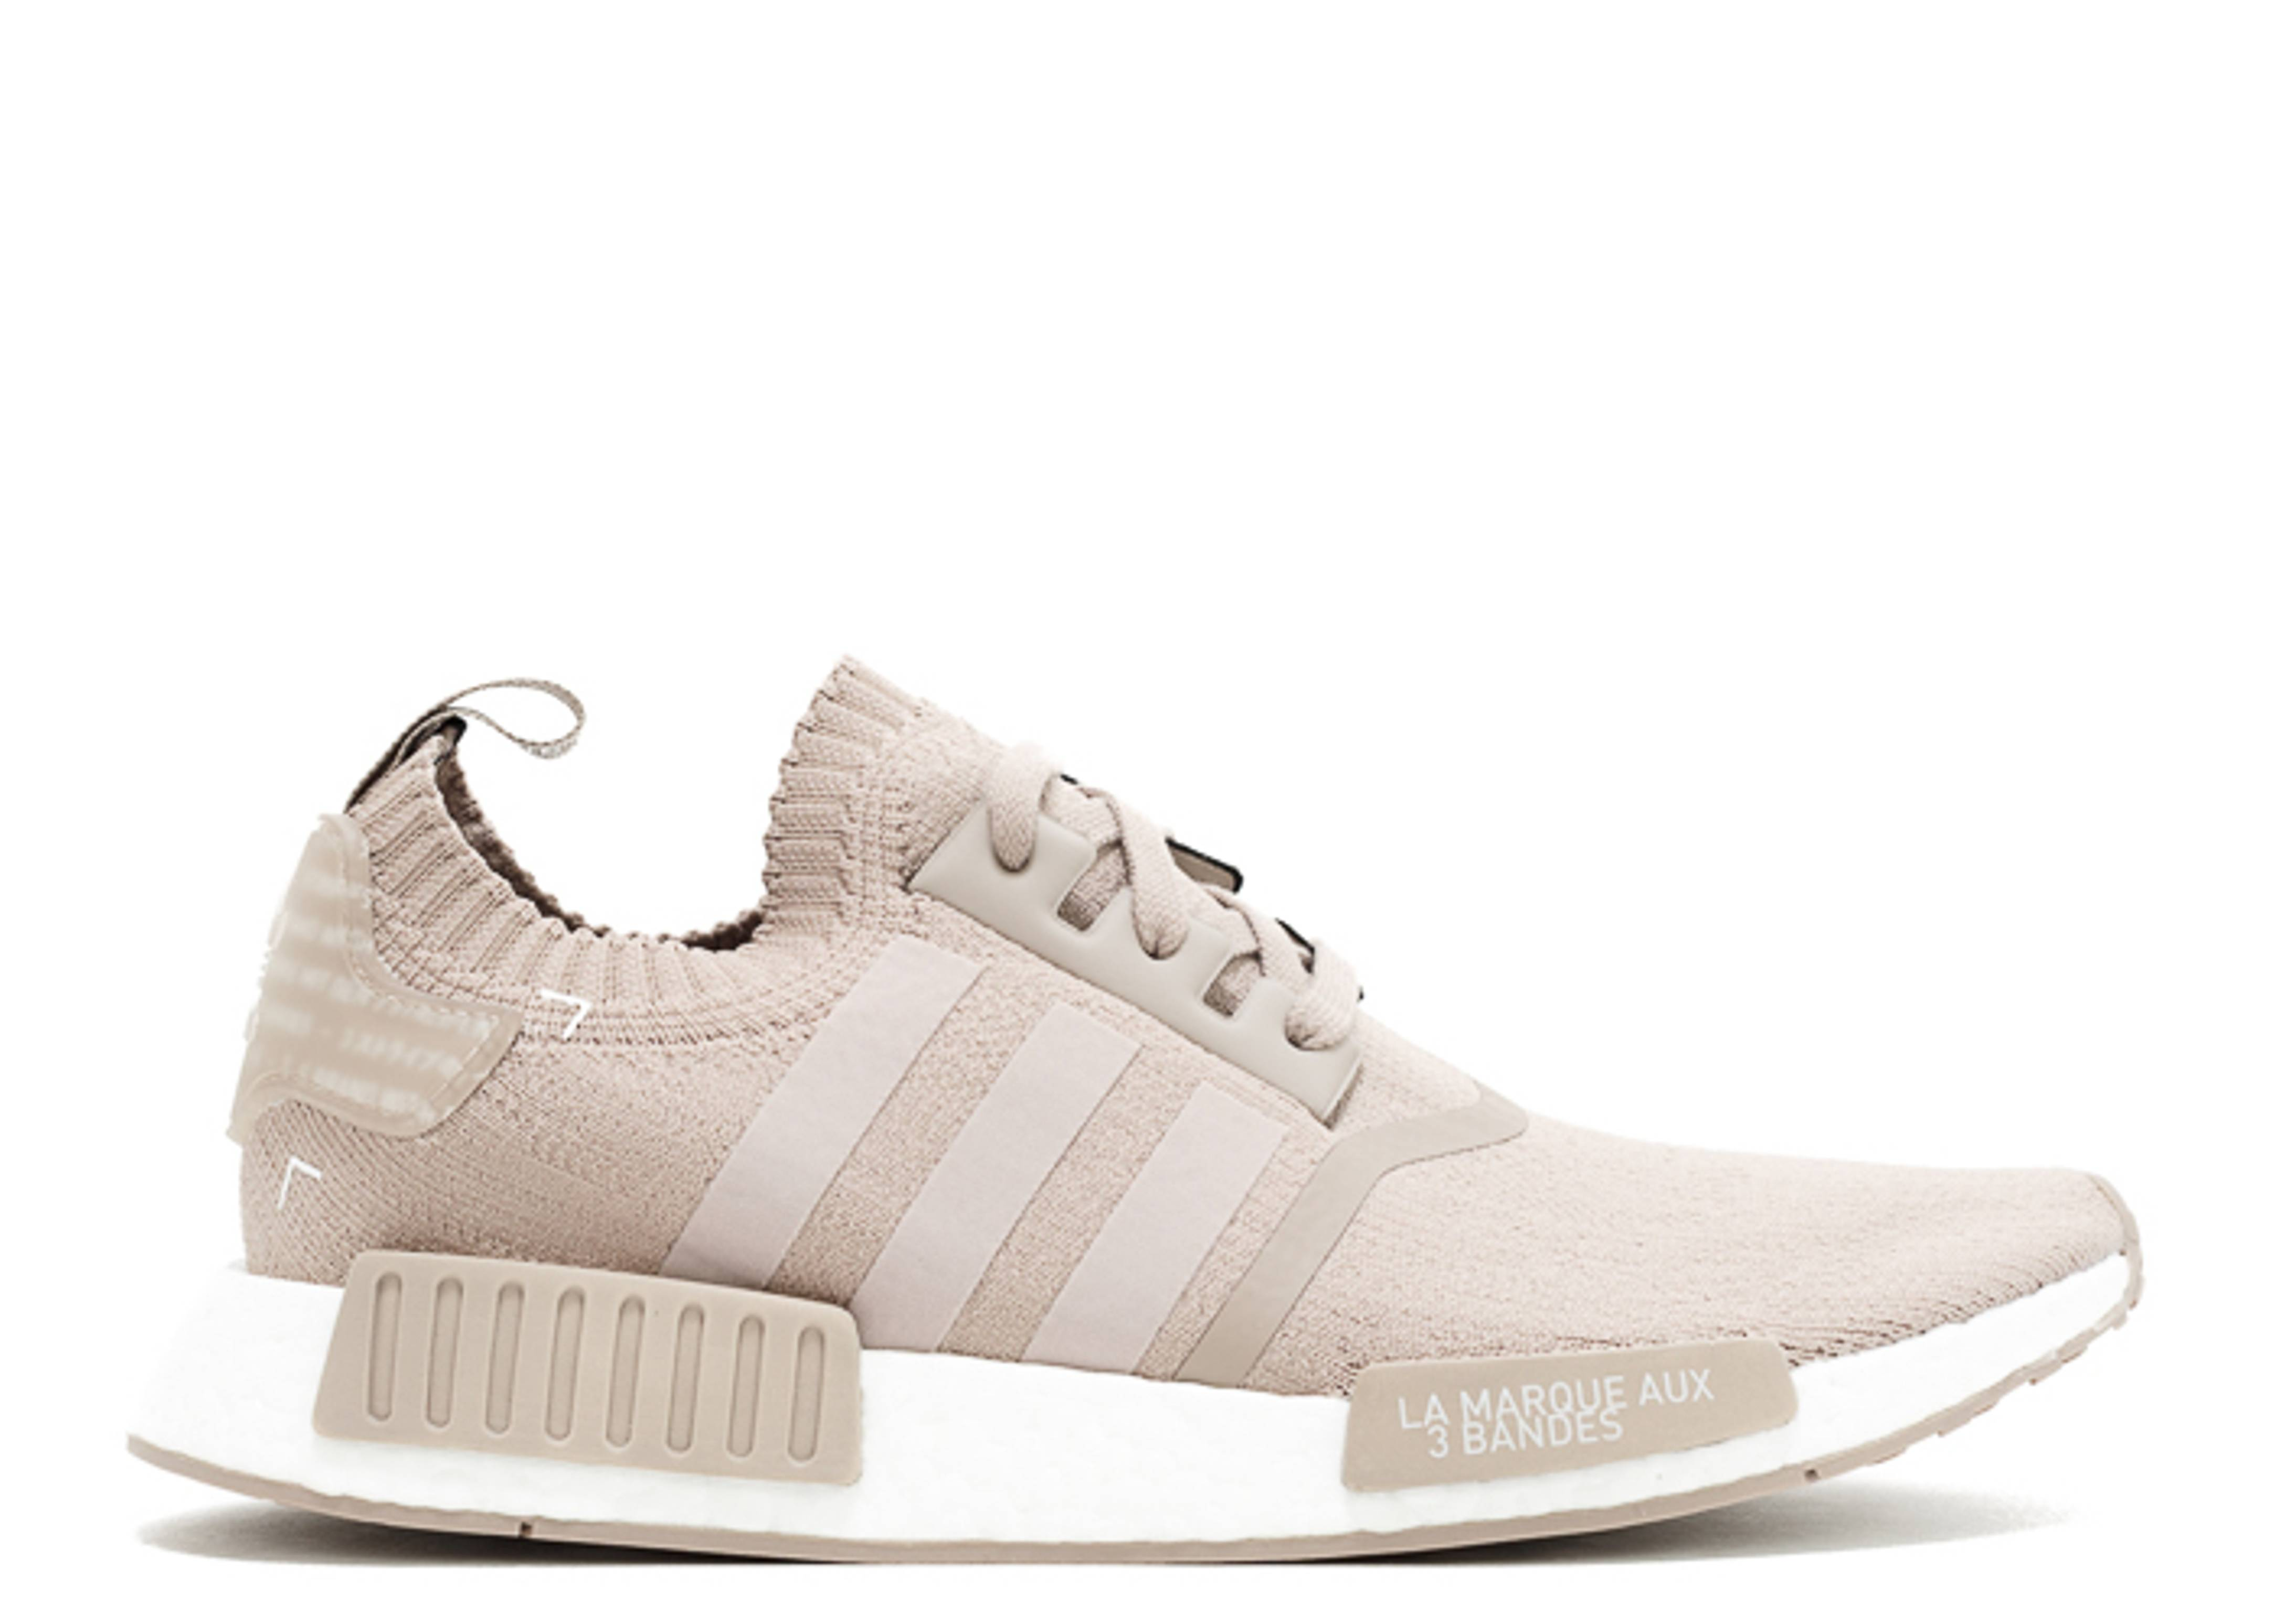 nmd r1 pk french beige adidas s81848 vapour grey white flight club. Black Bedroom Furniture Sets. Home Design Ideas